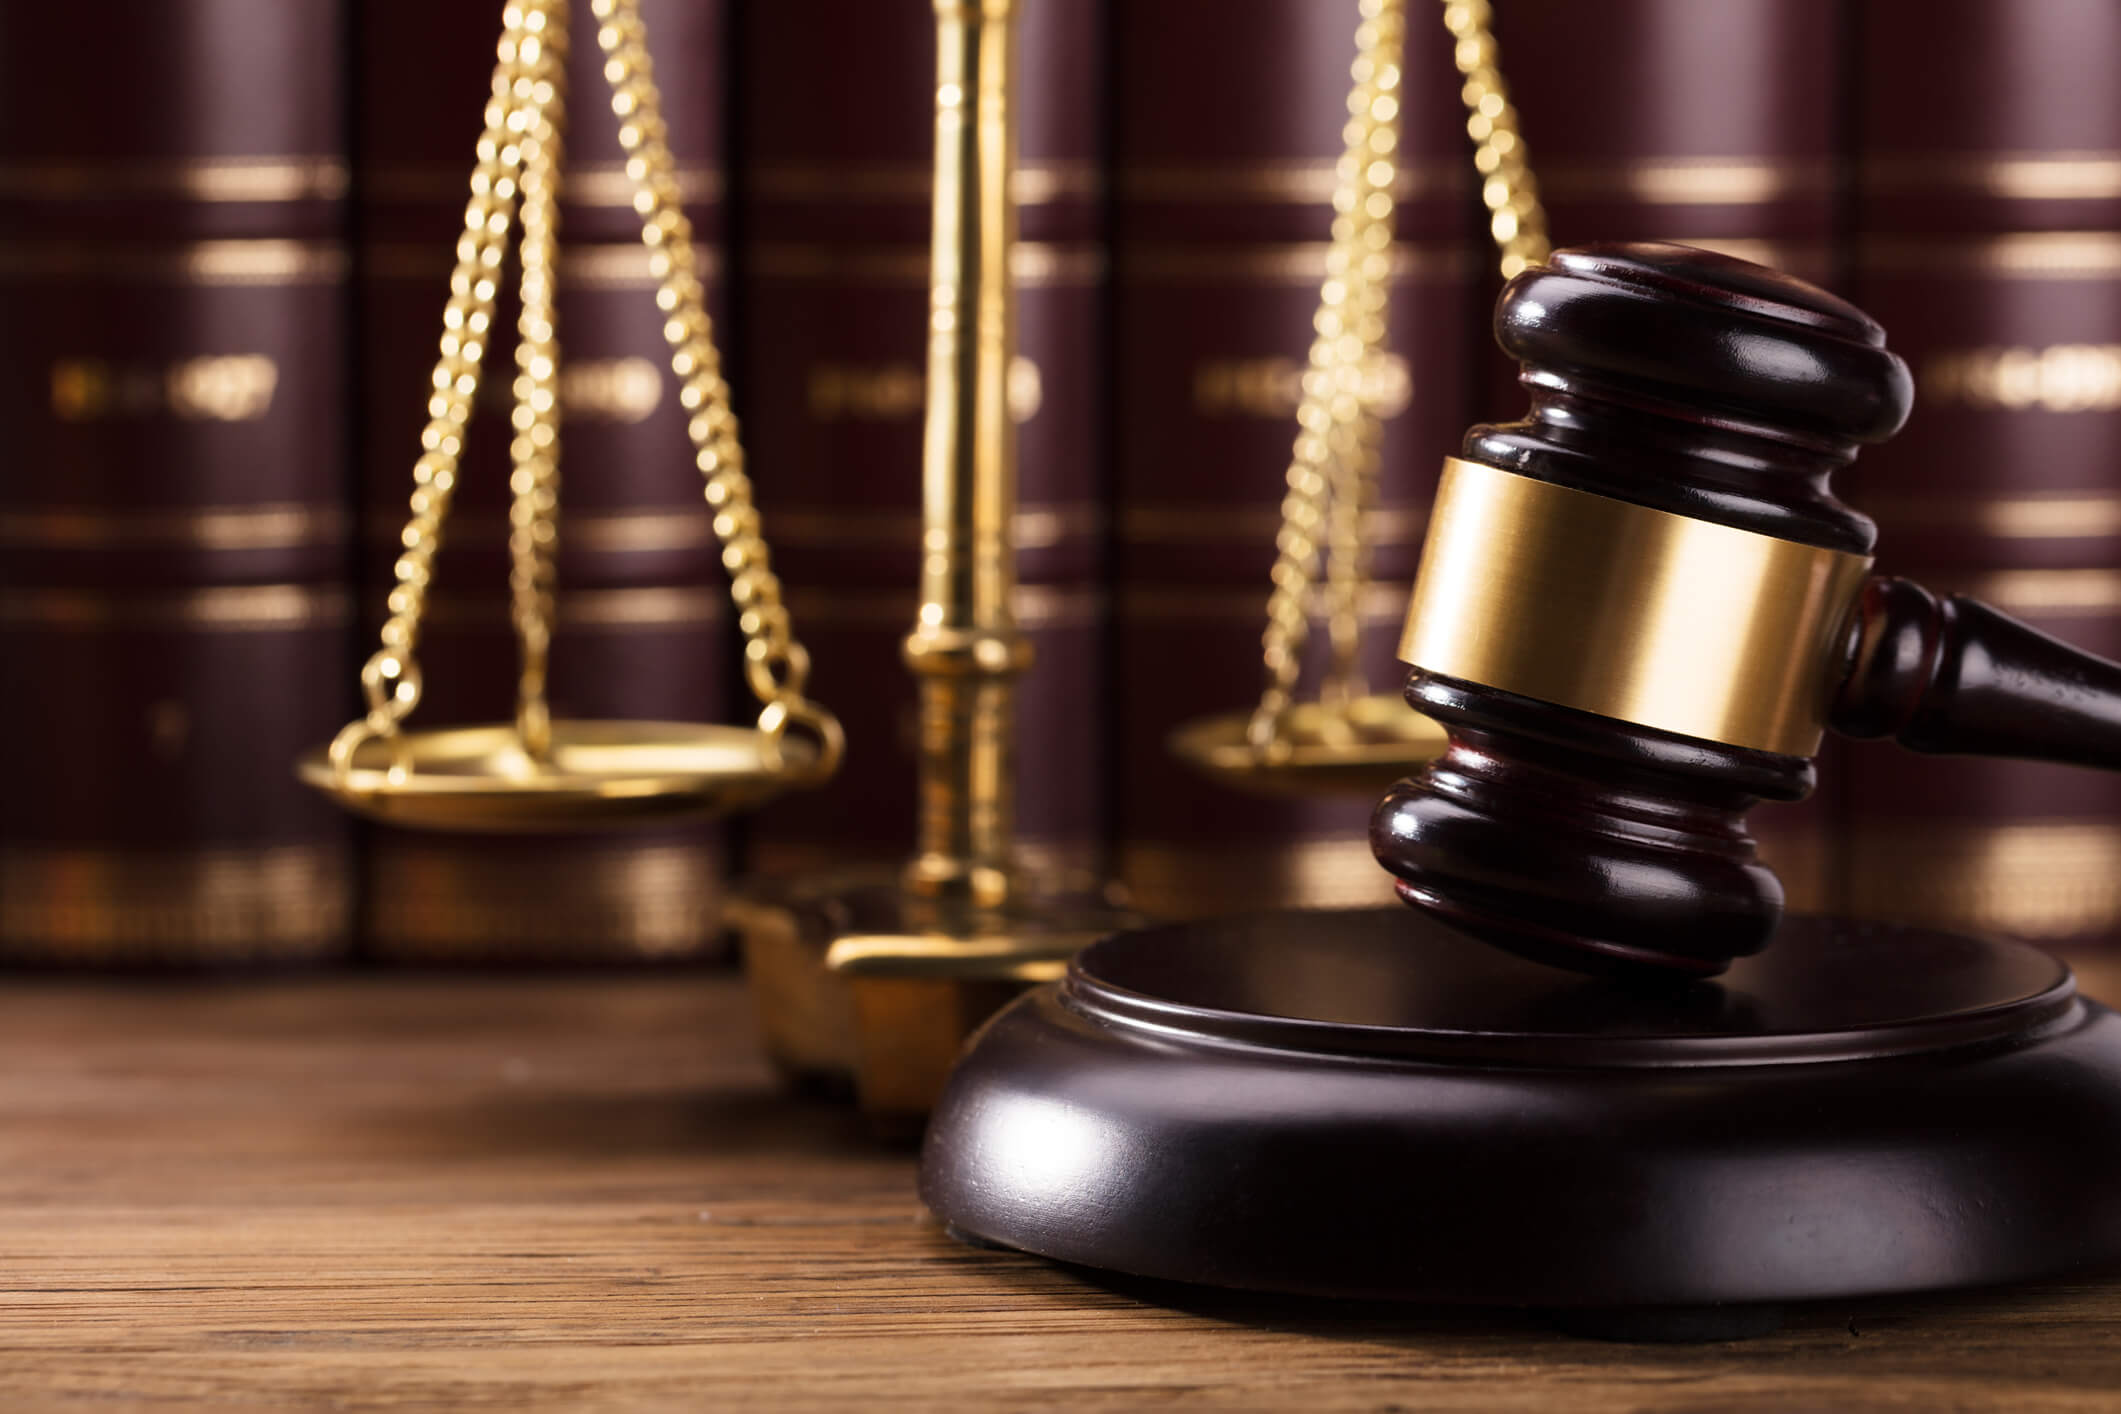 Federal criminal defense is a complex area of law. Procedures, discovery, plea deals, trials, etc. have some distinctions from state criminal defense.